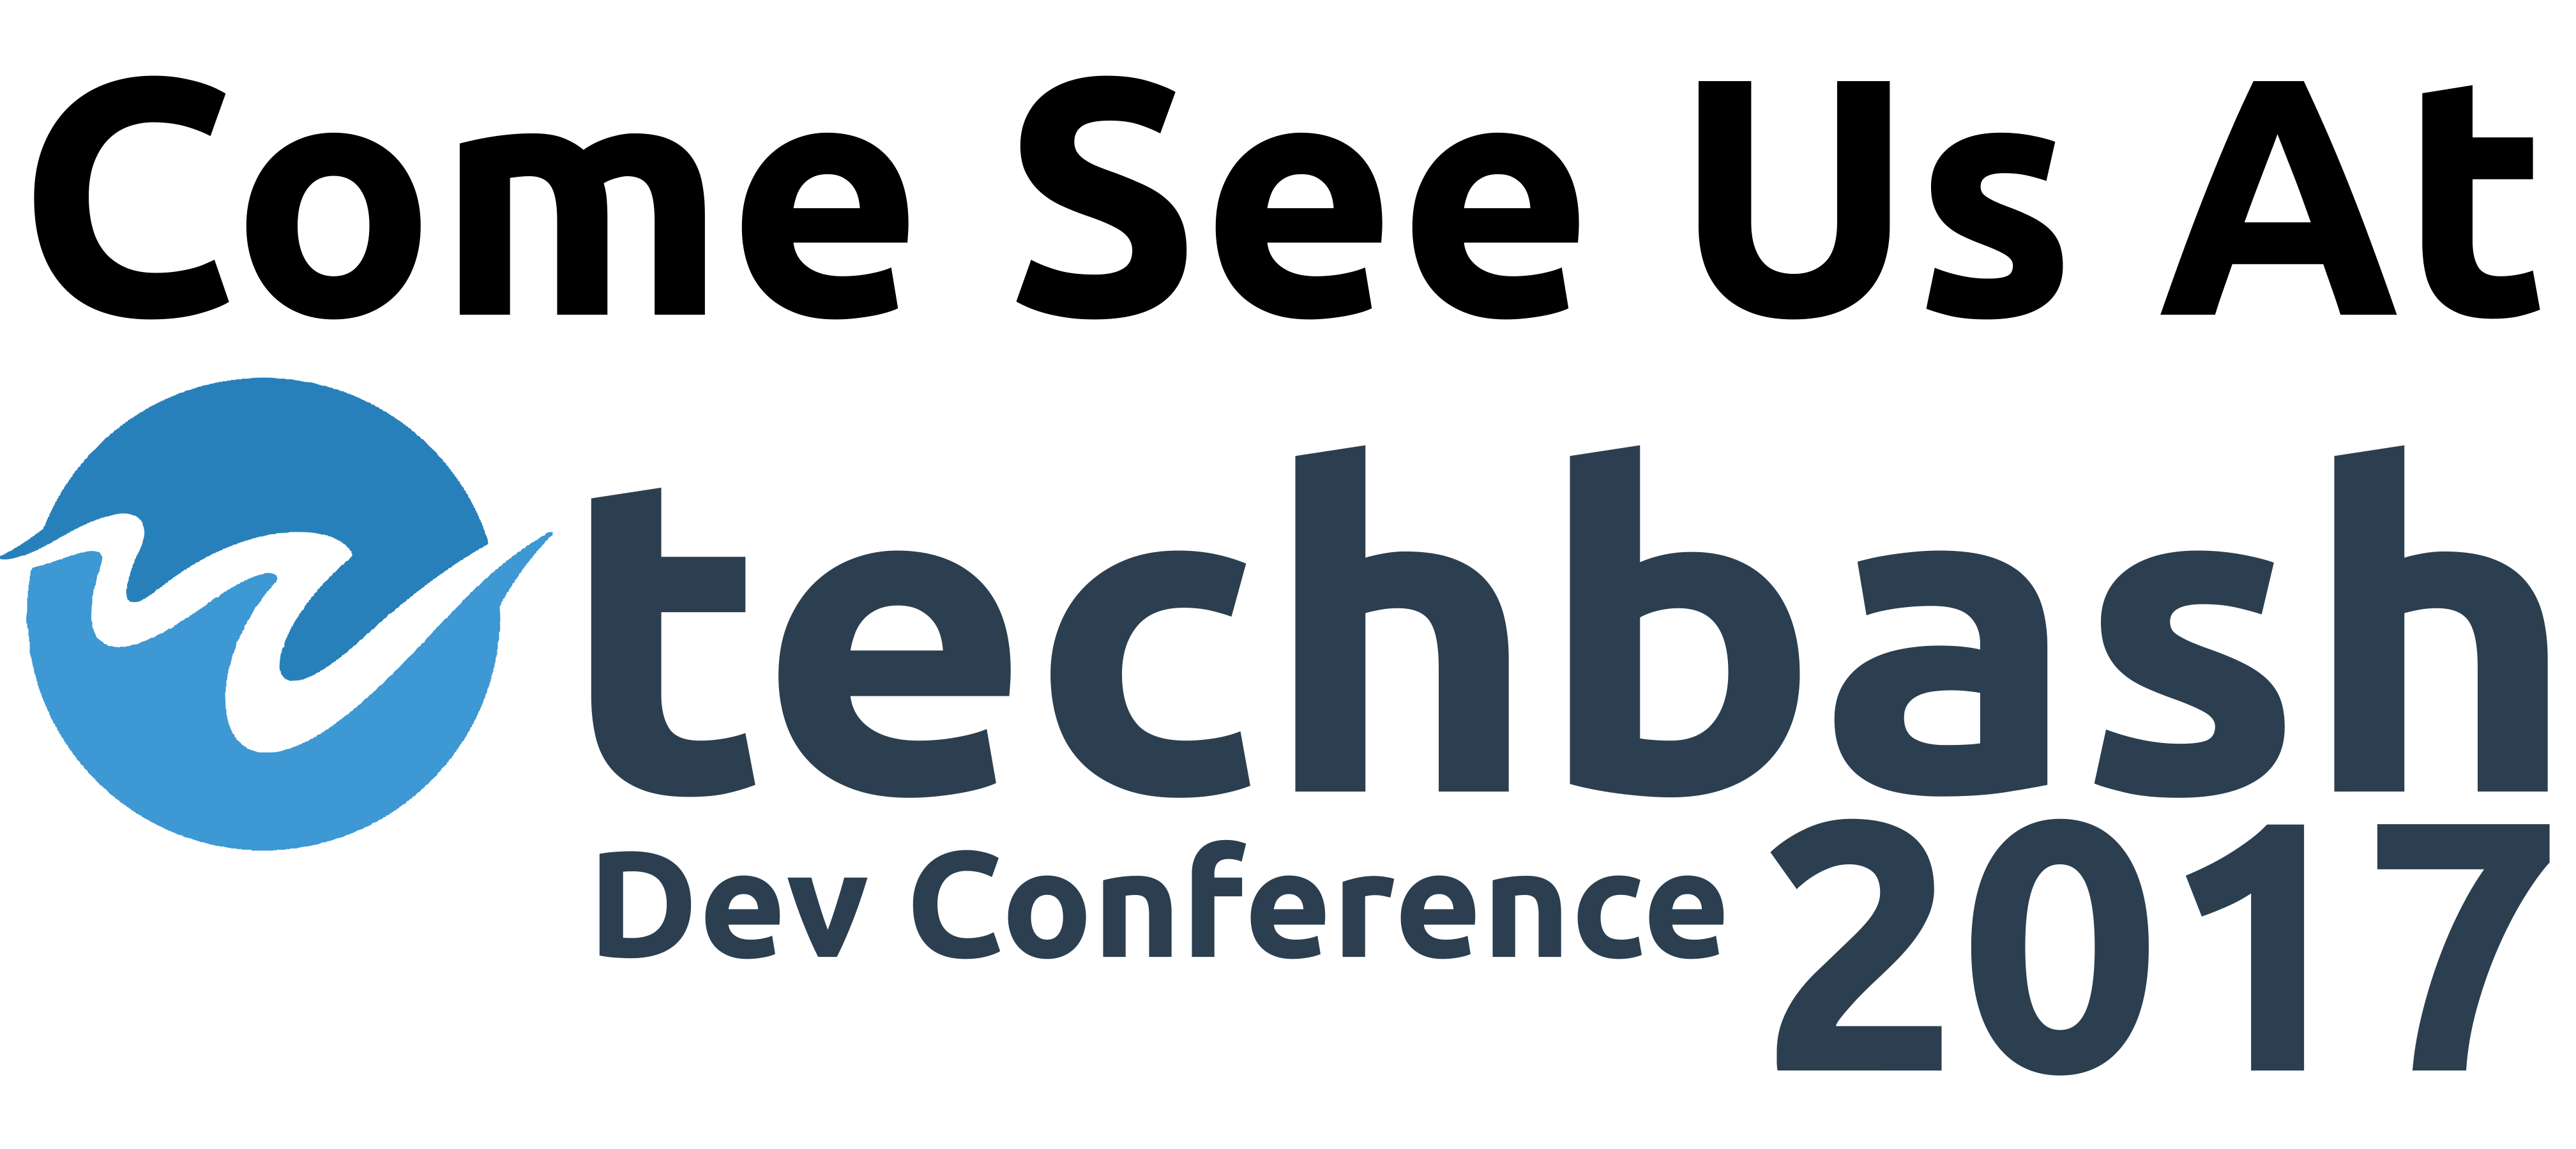 Come See Us at Techbash 2017